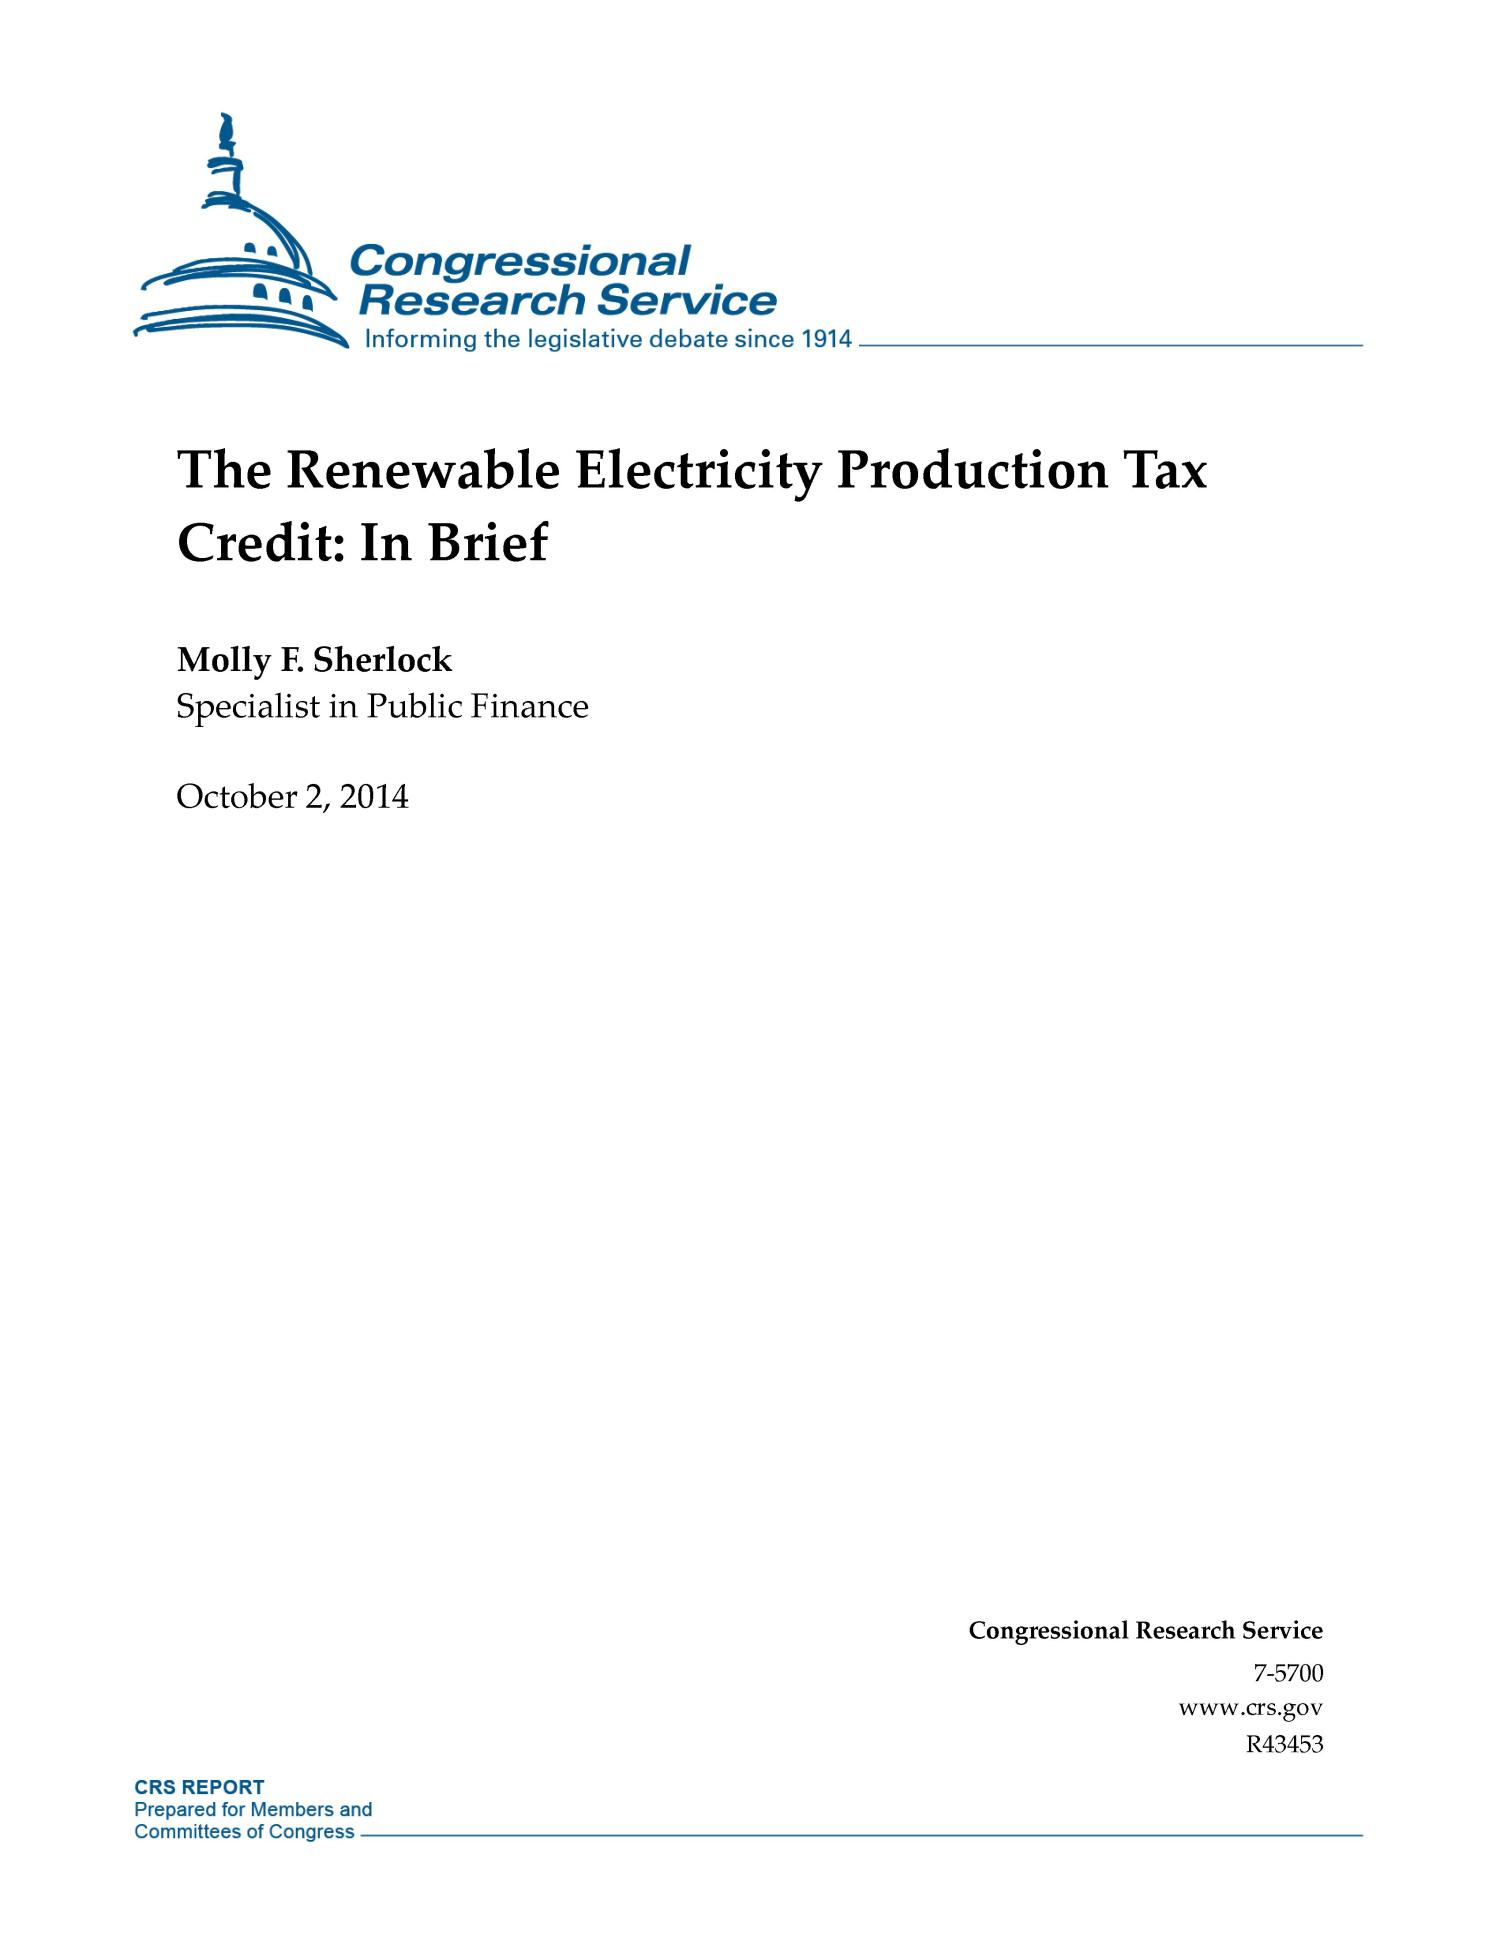 The Renewable Electricity Production Tax Credit: In Brief                                                                                                      [Sequence #]: 1 of 15